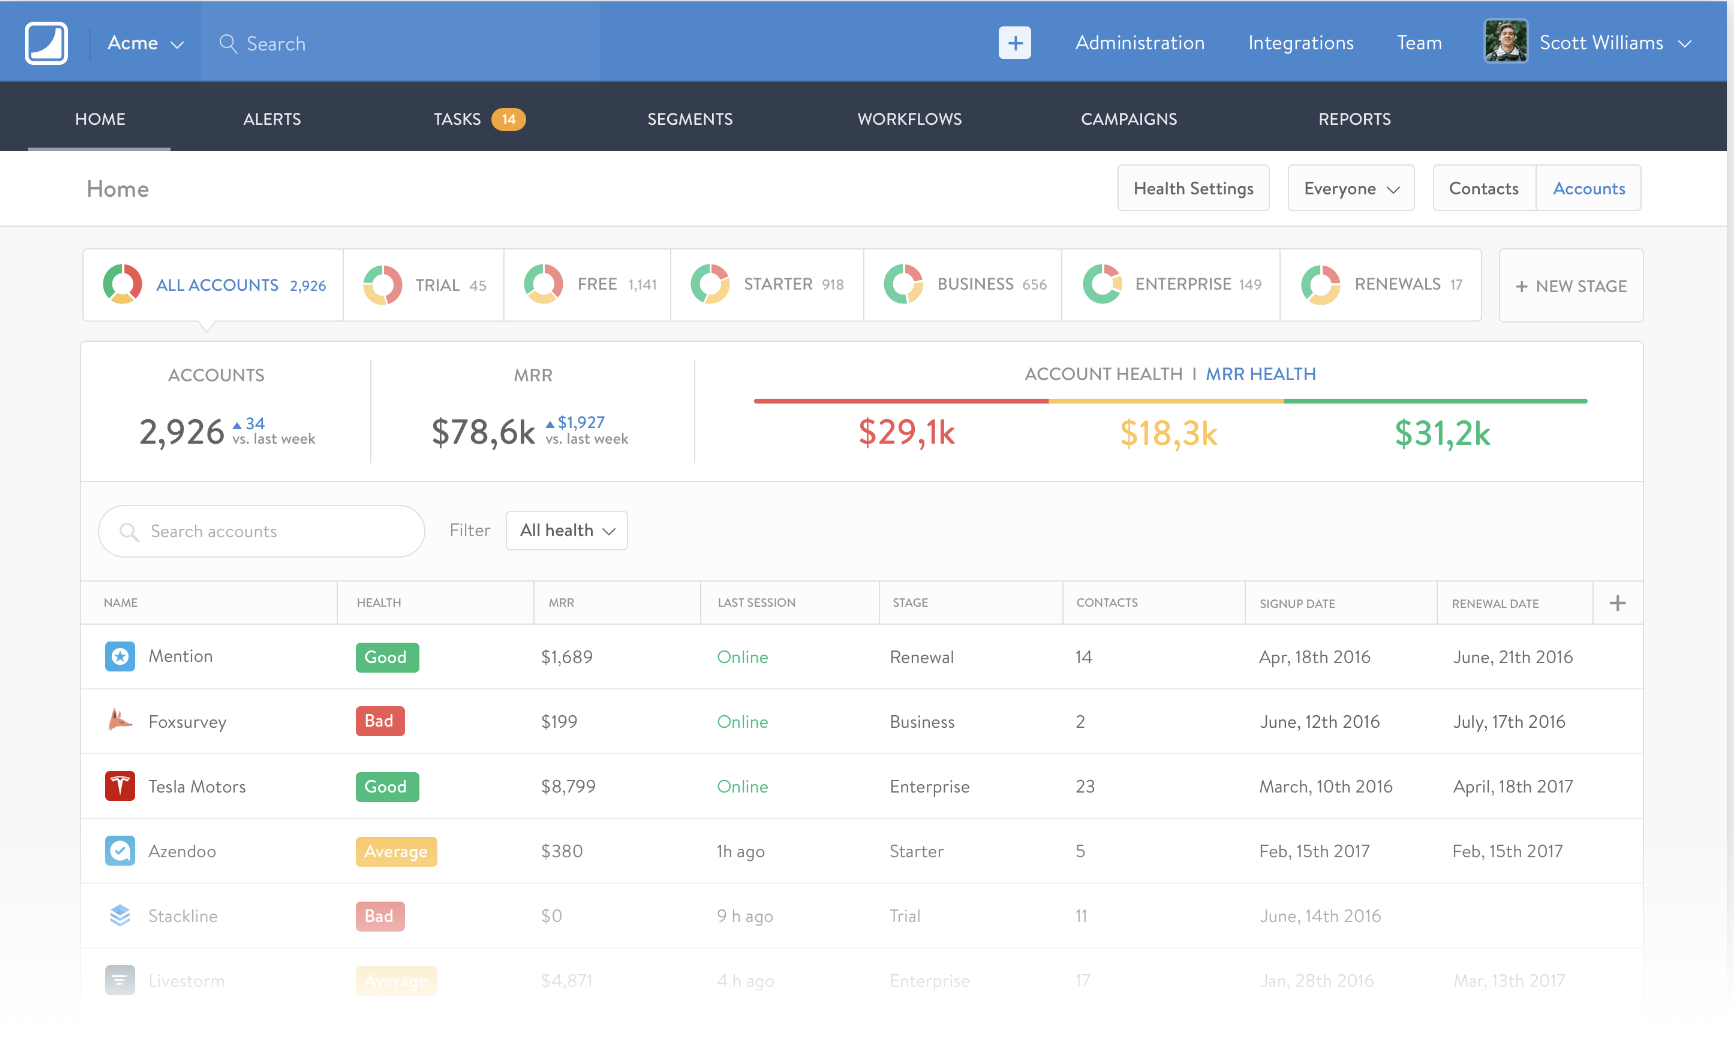 Provides sales dashboard so teams can access alerts, tasks, open campaigns, and workflows with a few clicks